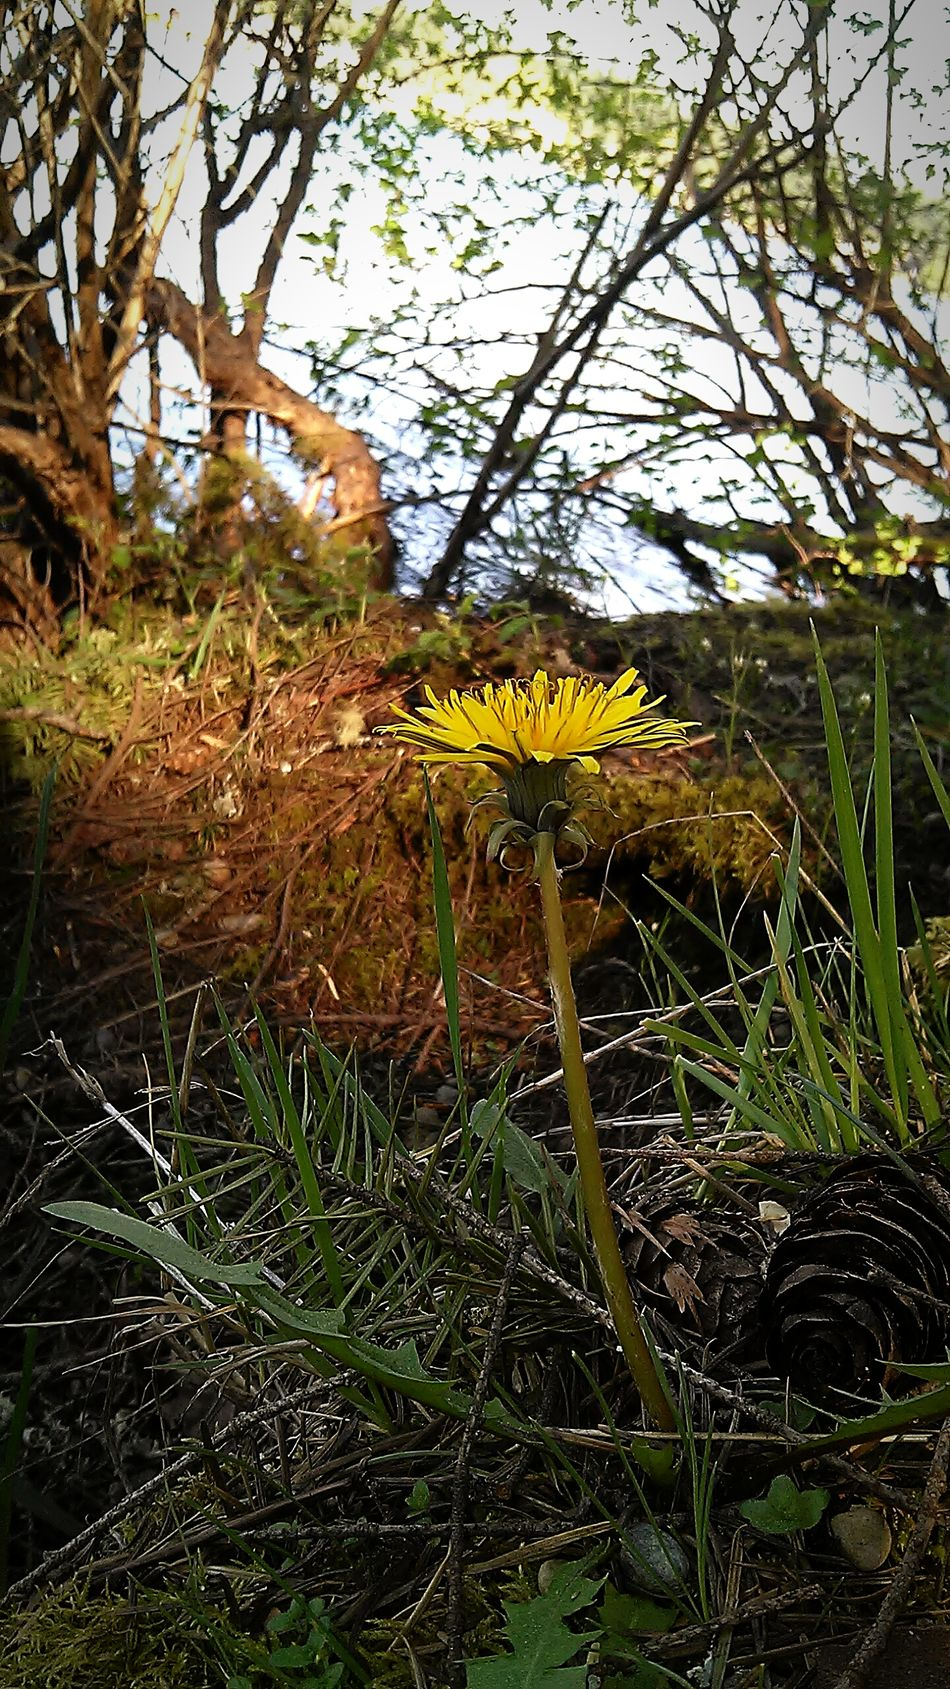 Washington State No People Vertical Dandelion Weeds Are Pretty Too! Nature Springtime Green Yellow Close-up Captivating Vivid Electric Lake Sawyer Maple Valley, WA Urban Spring Fever Showcase April USA